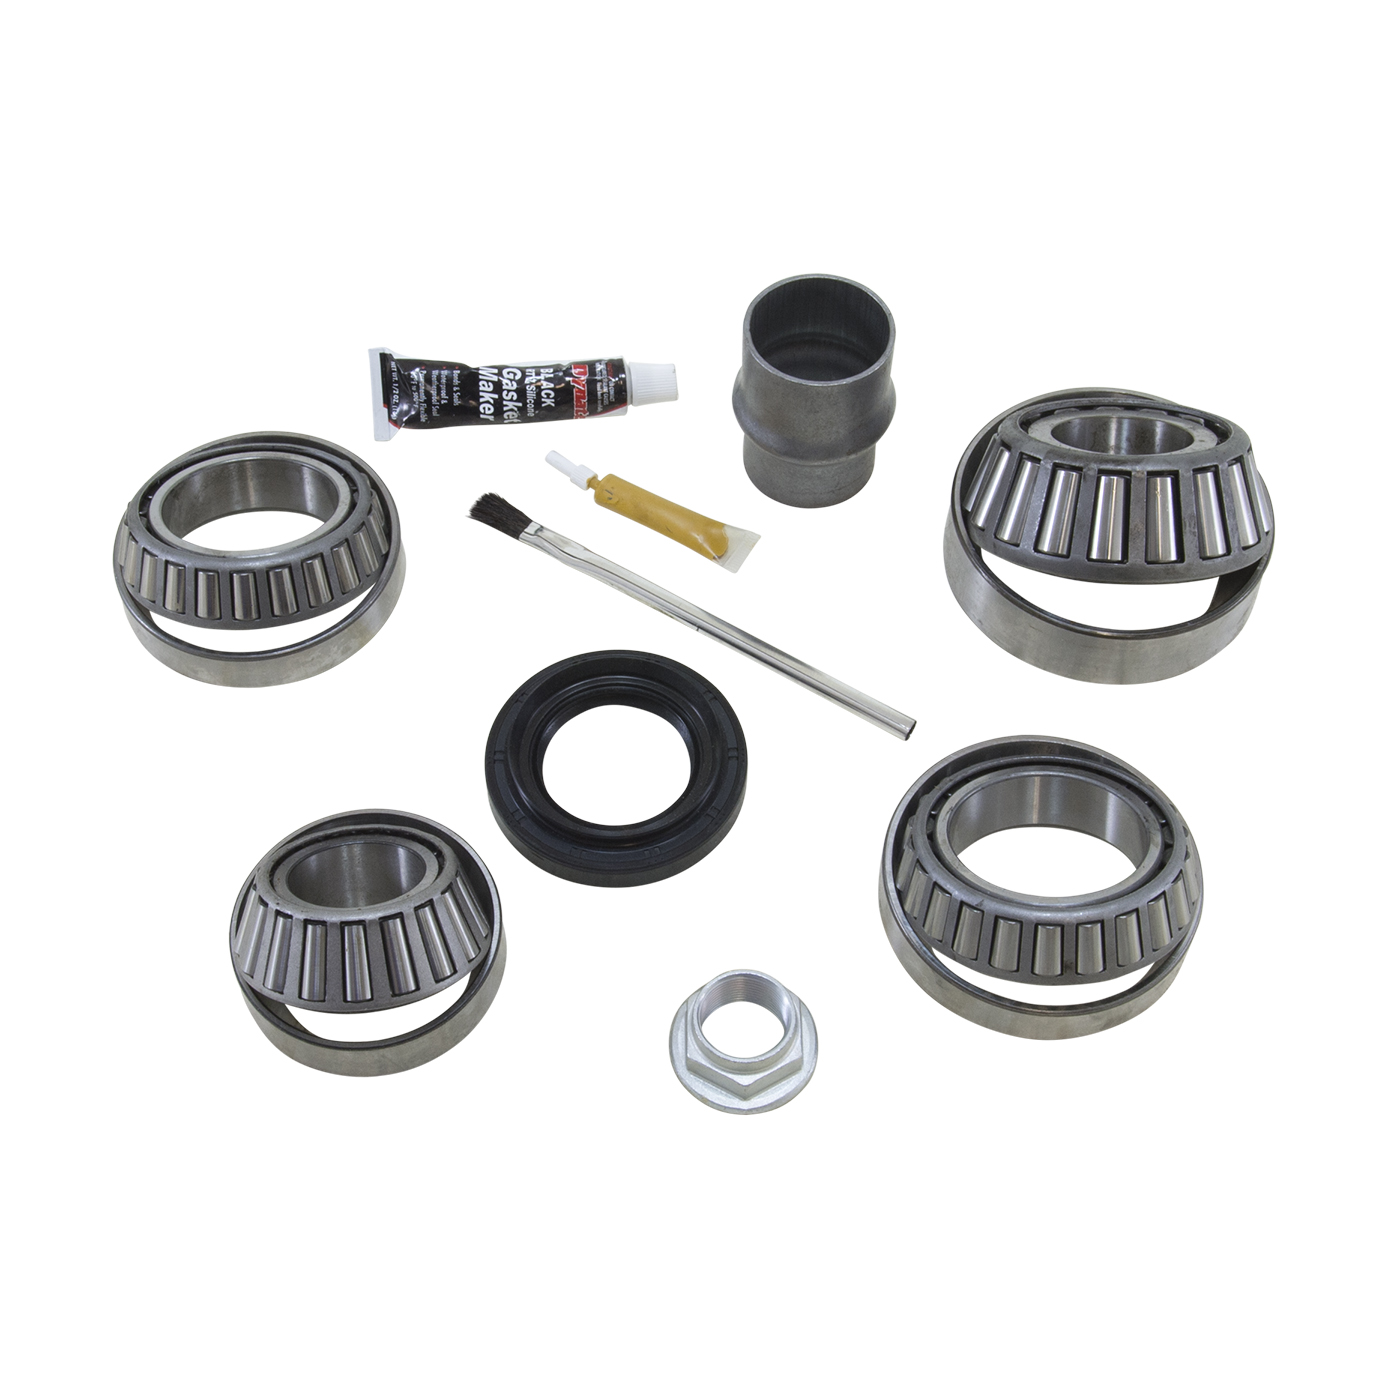 BK T100 - Yukon Bearing install kit for Toyota T100 and Tacoma differential